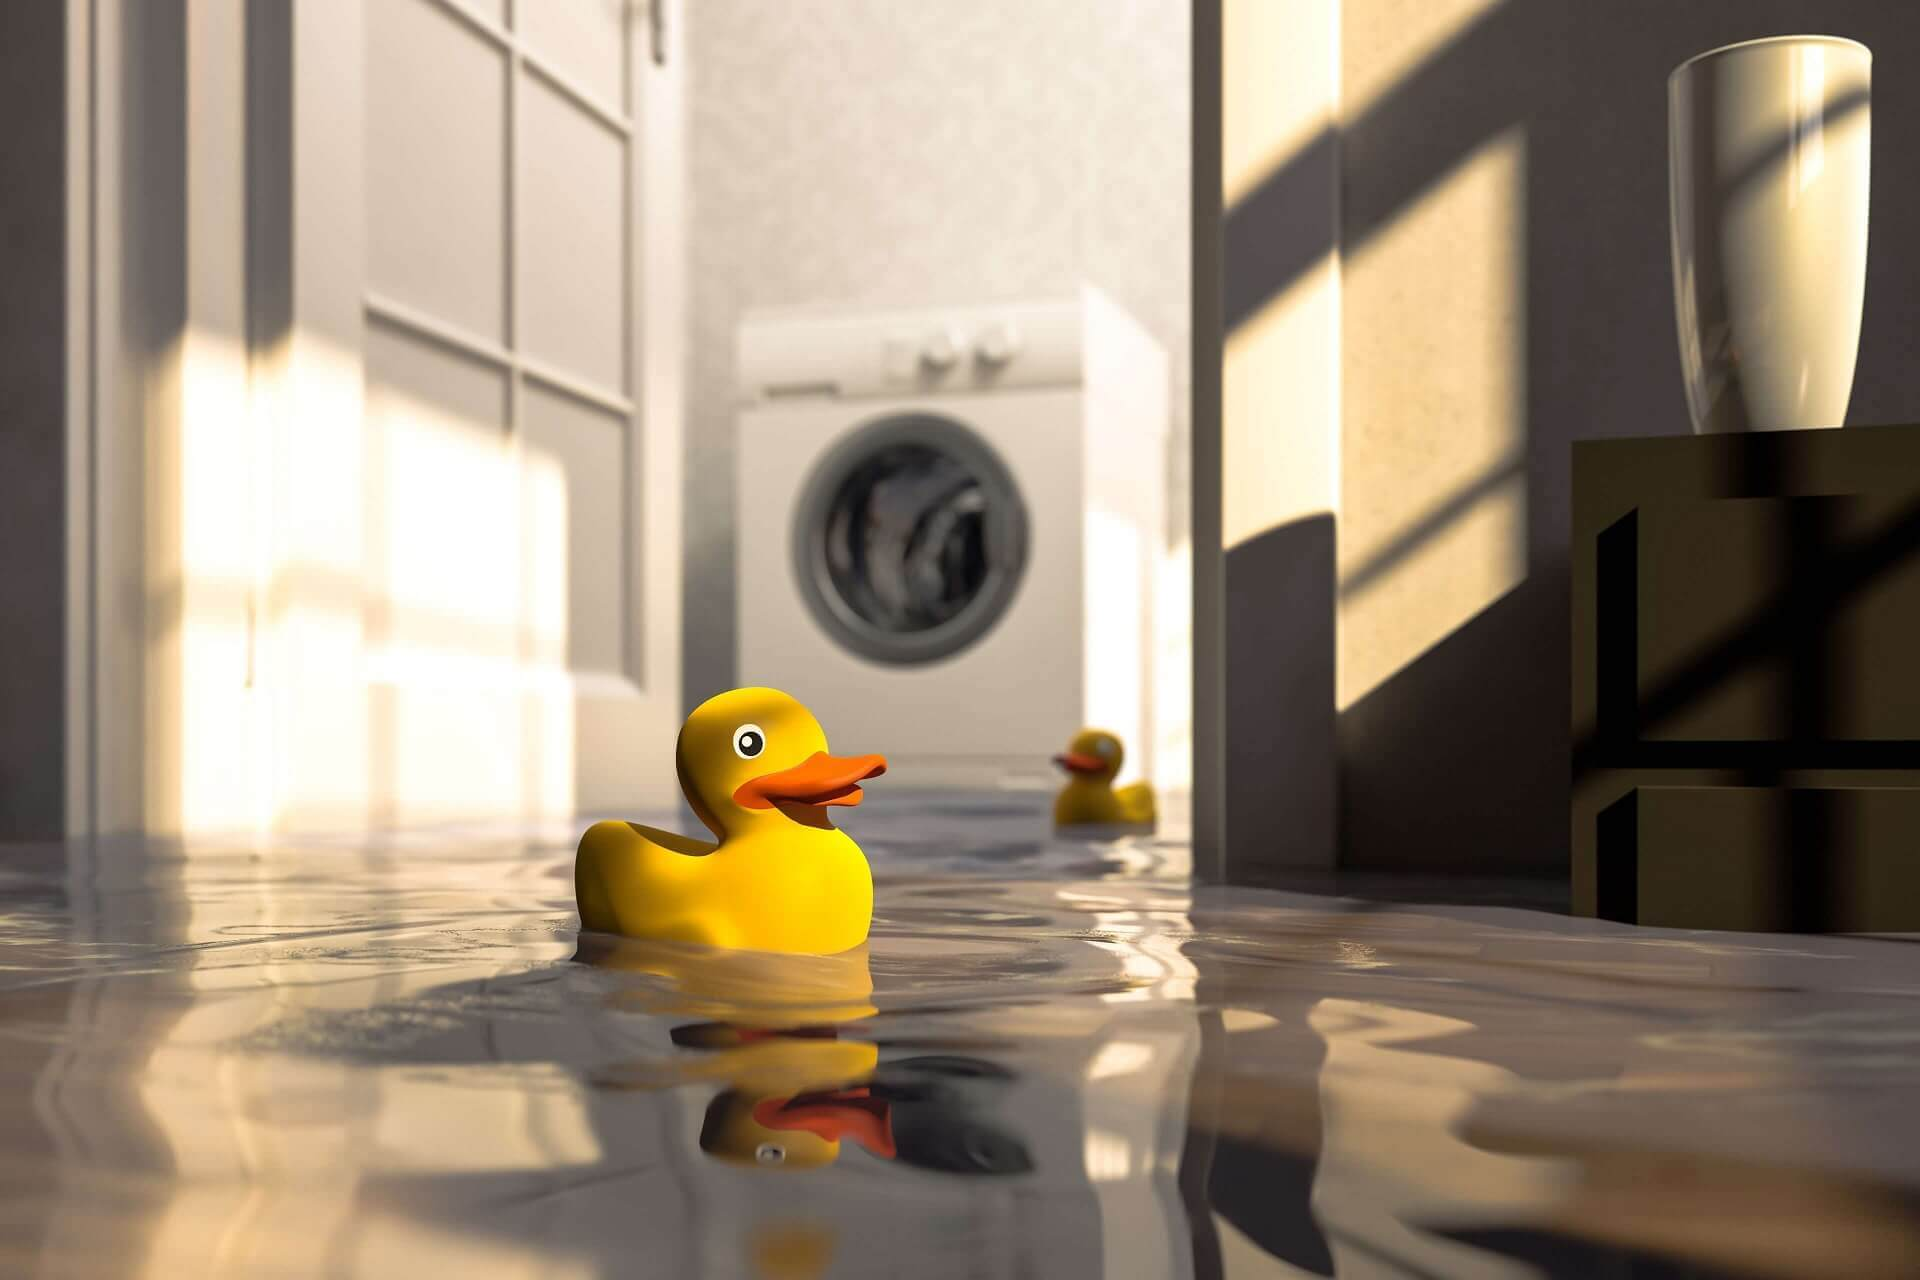 Rubber ducky in flooded room